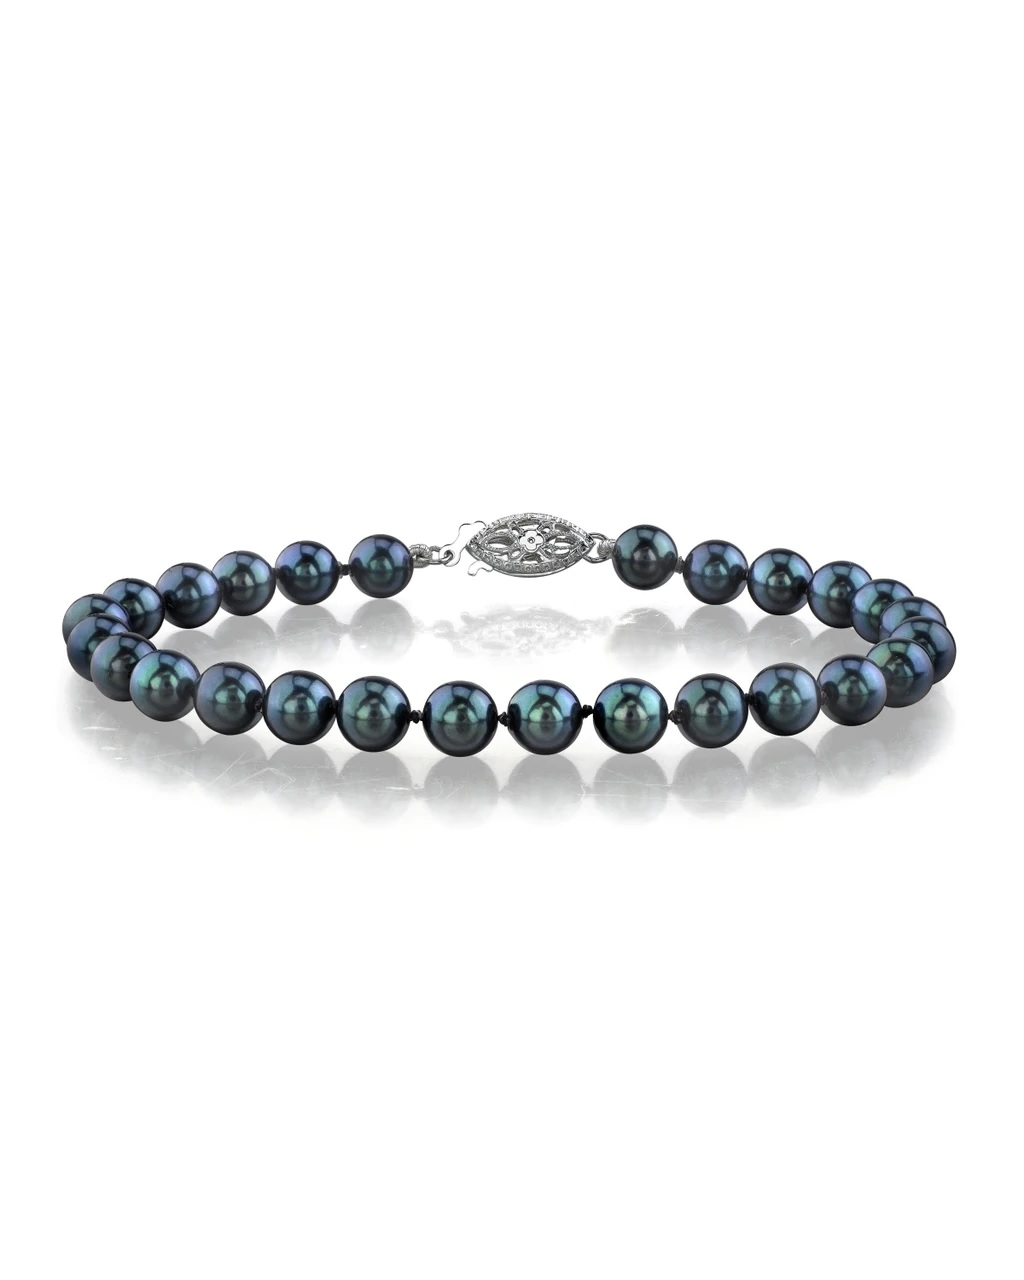 This elegant bracelet features 6.0-6.5mm Japanese Akoya pearls, handpicked for their luminous luster